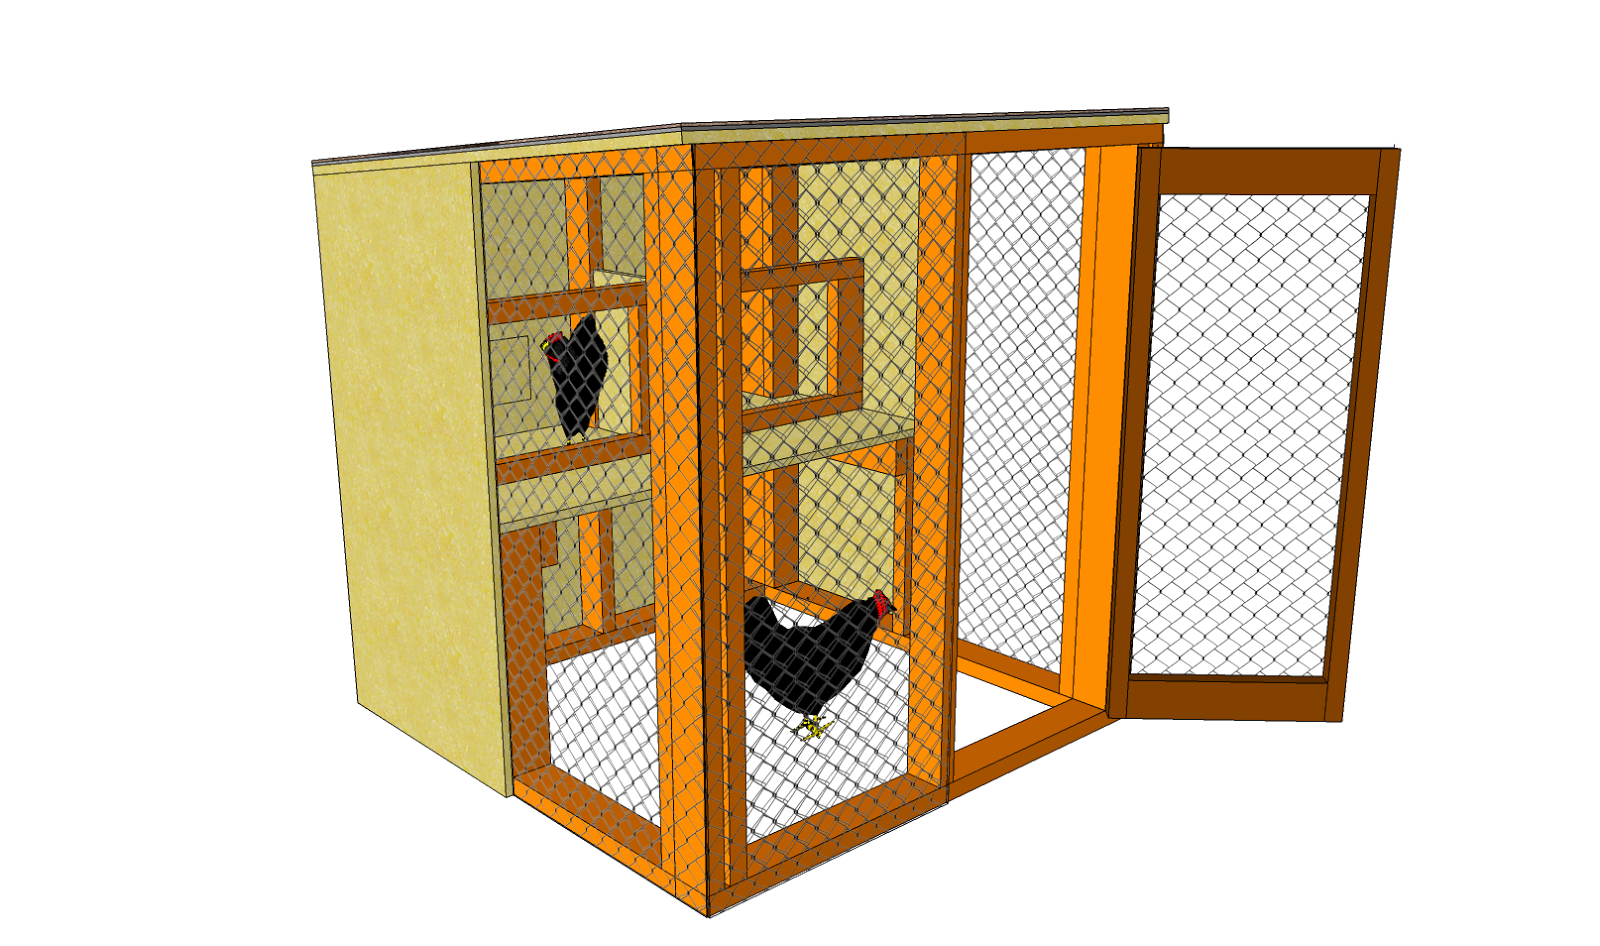 For chick coop 5 chicken coop plans for Plans for chicken coops